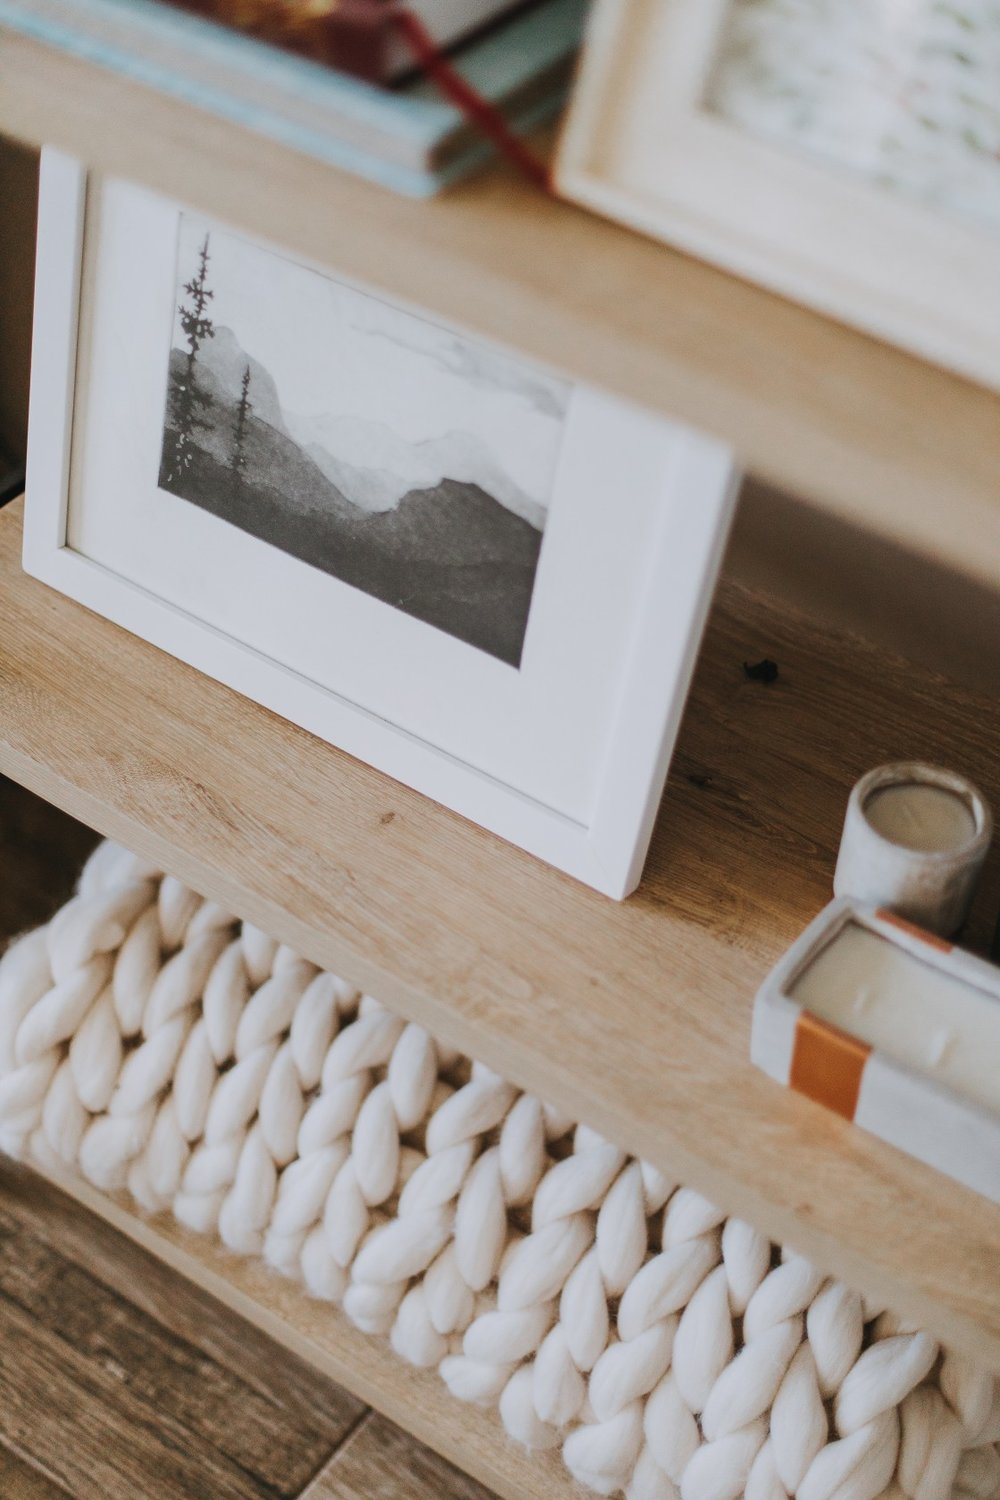 step 5— pictures - Add personality by including any of the following: photos of your family, a print of a favorite quote, or a beautiful or meaningful landscape. It's a good idea to choose frames that are cohesive with the rest of your shelf decor.